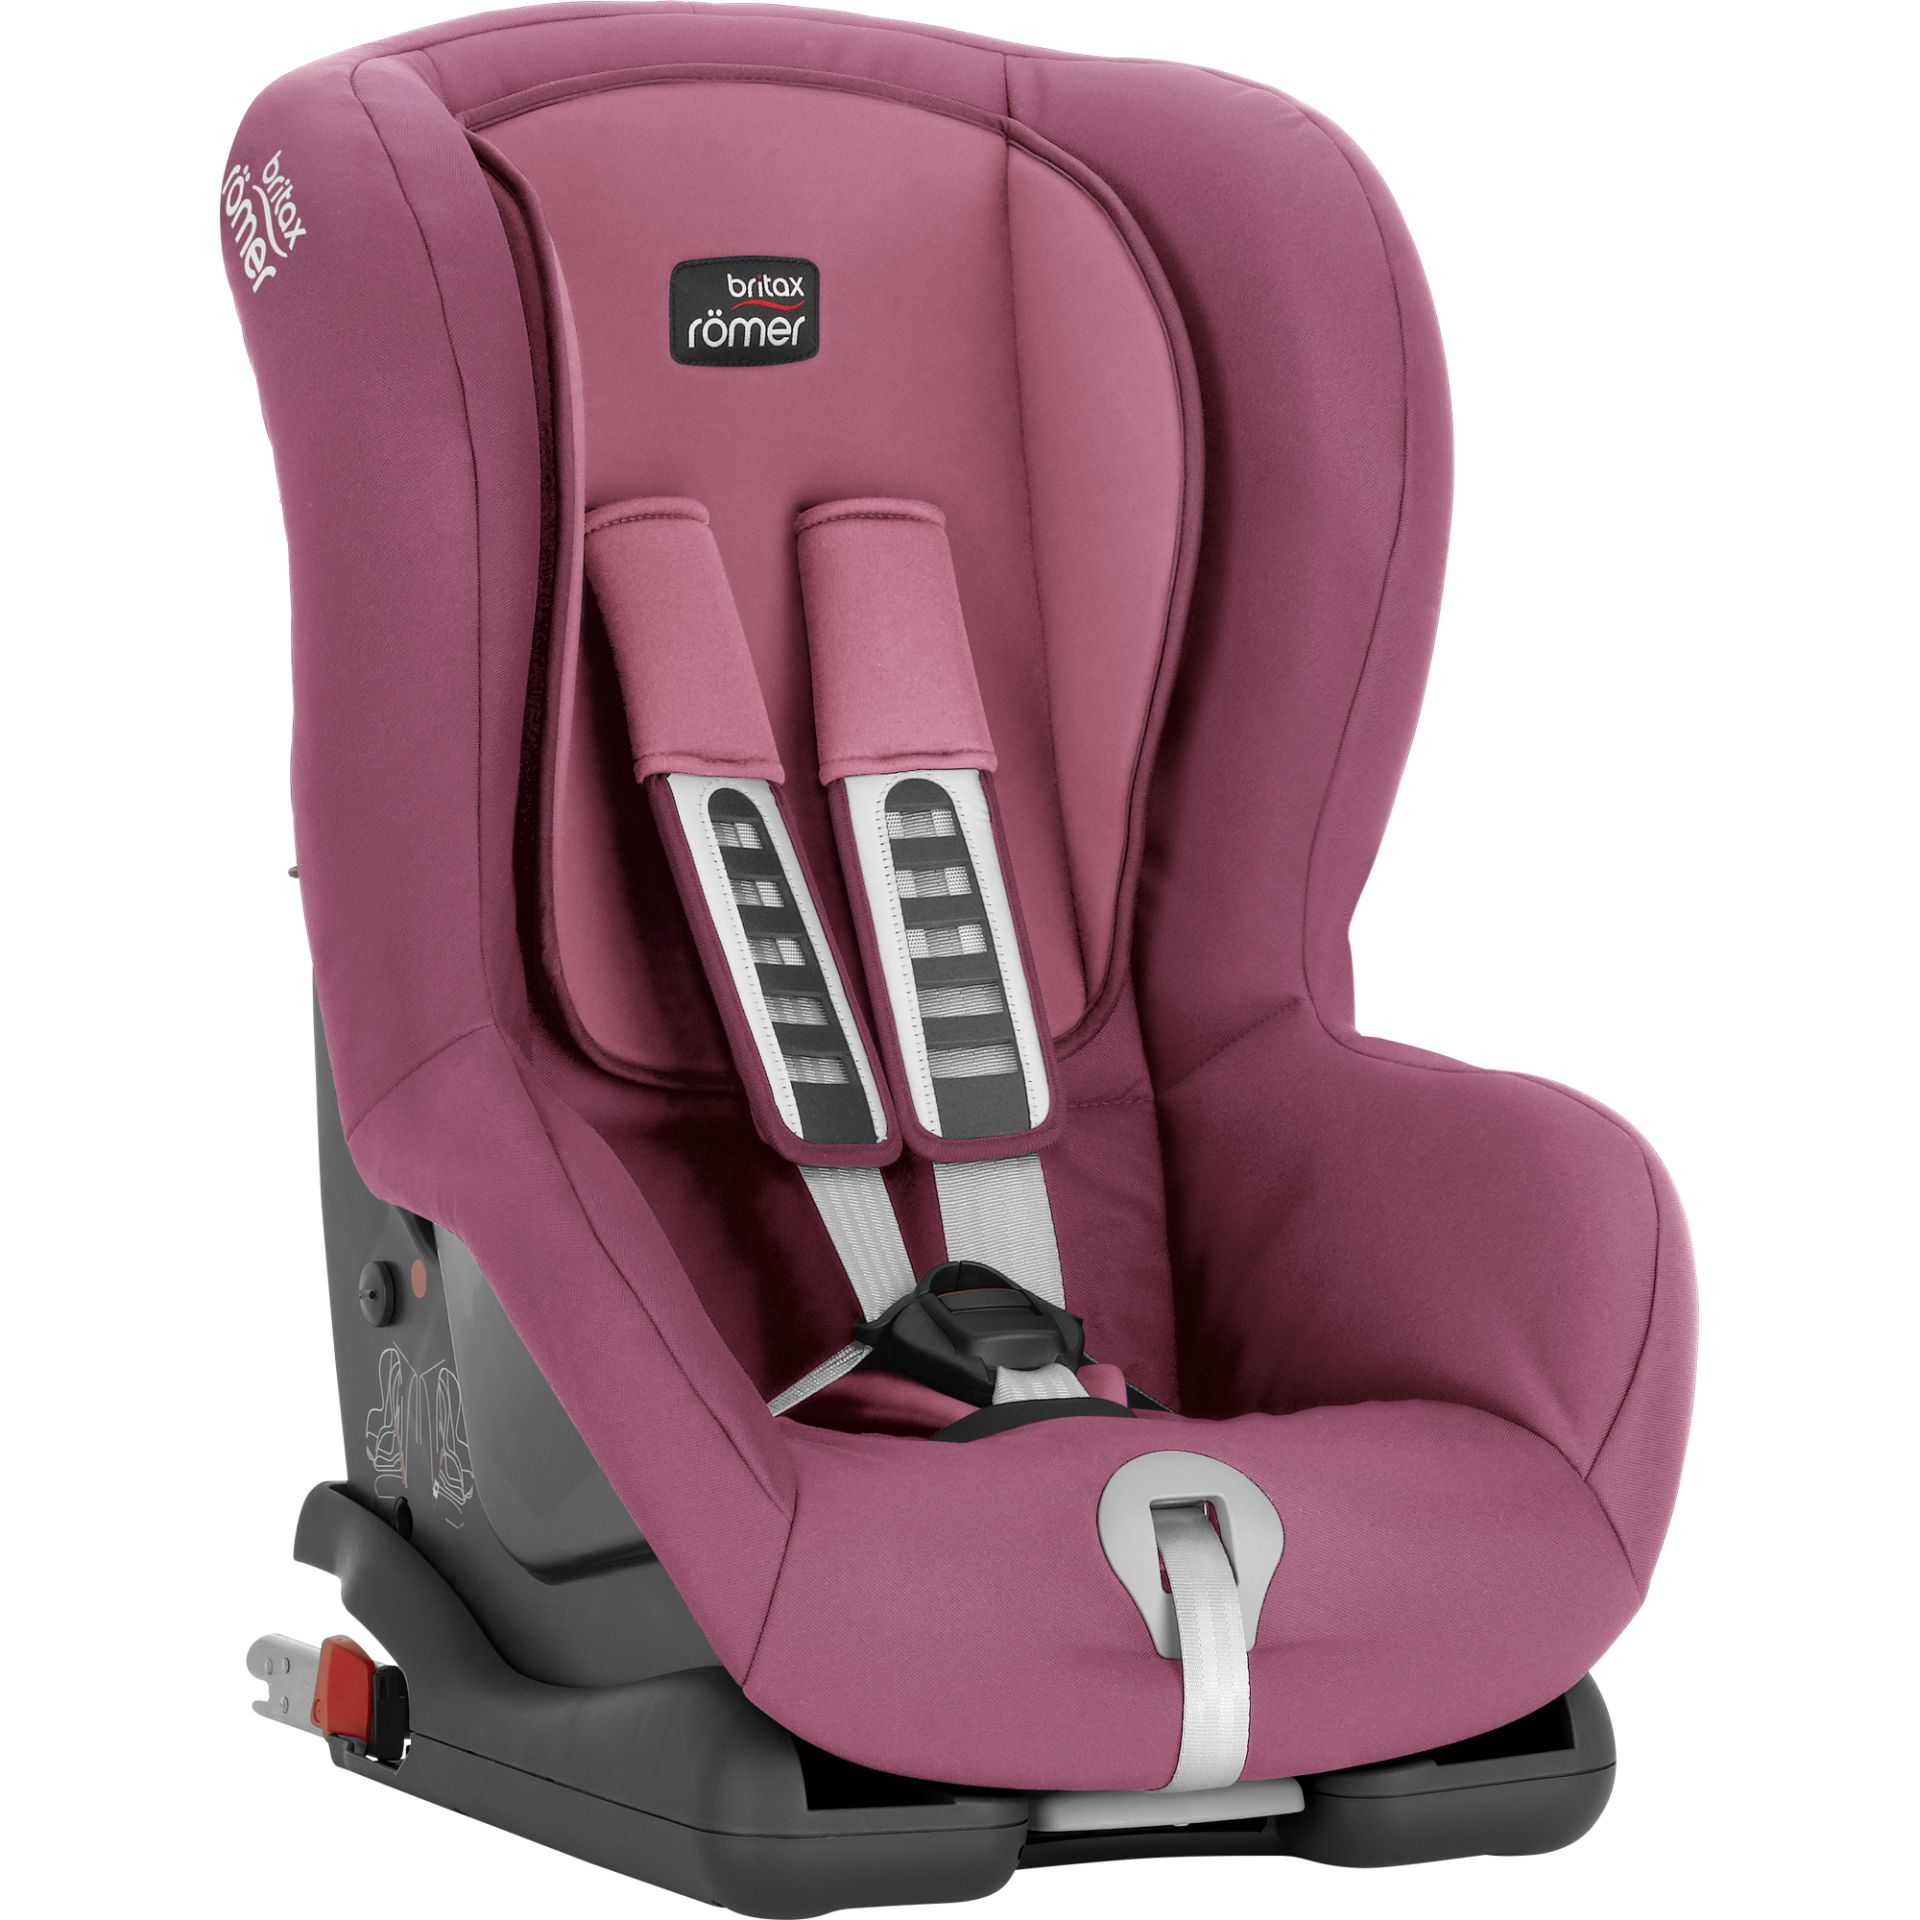 britax r mer car seat duo plus 2019 wine rose buy at kidsroom car seats isofix child car seats. Black Bedroom Furniture Sets. Home Design Ideas